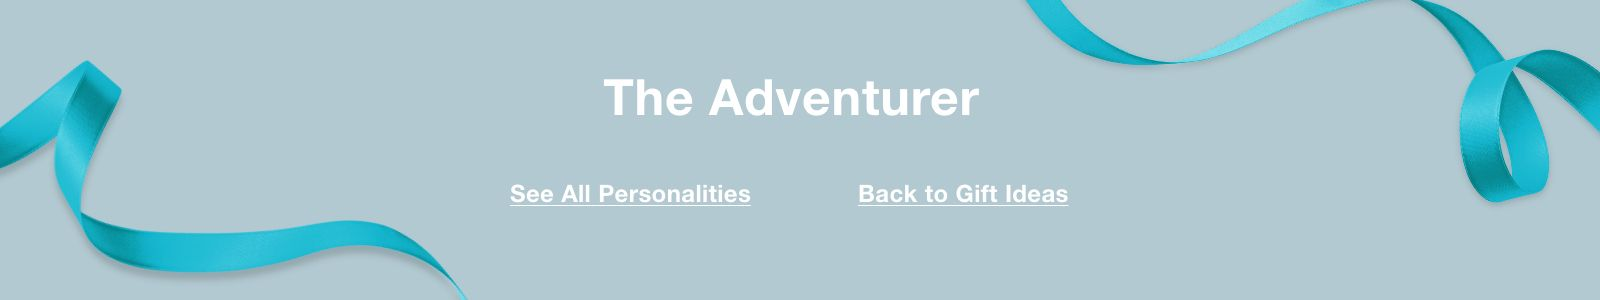 The Adventurer, See All Personalities, Back to Gift Ideas